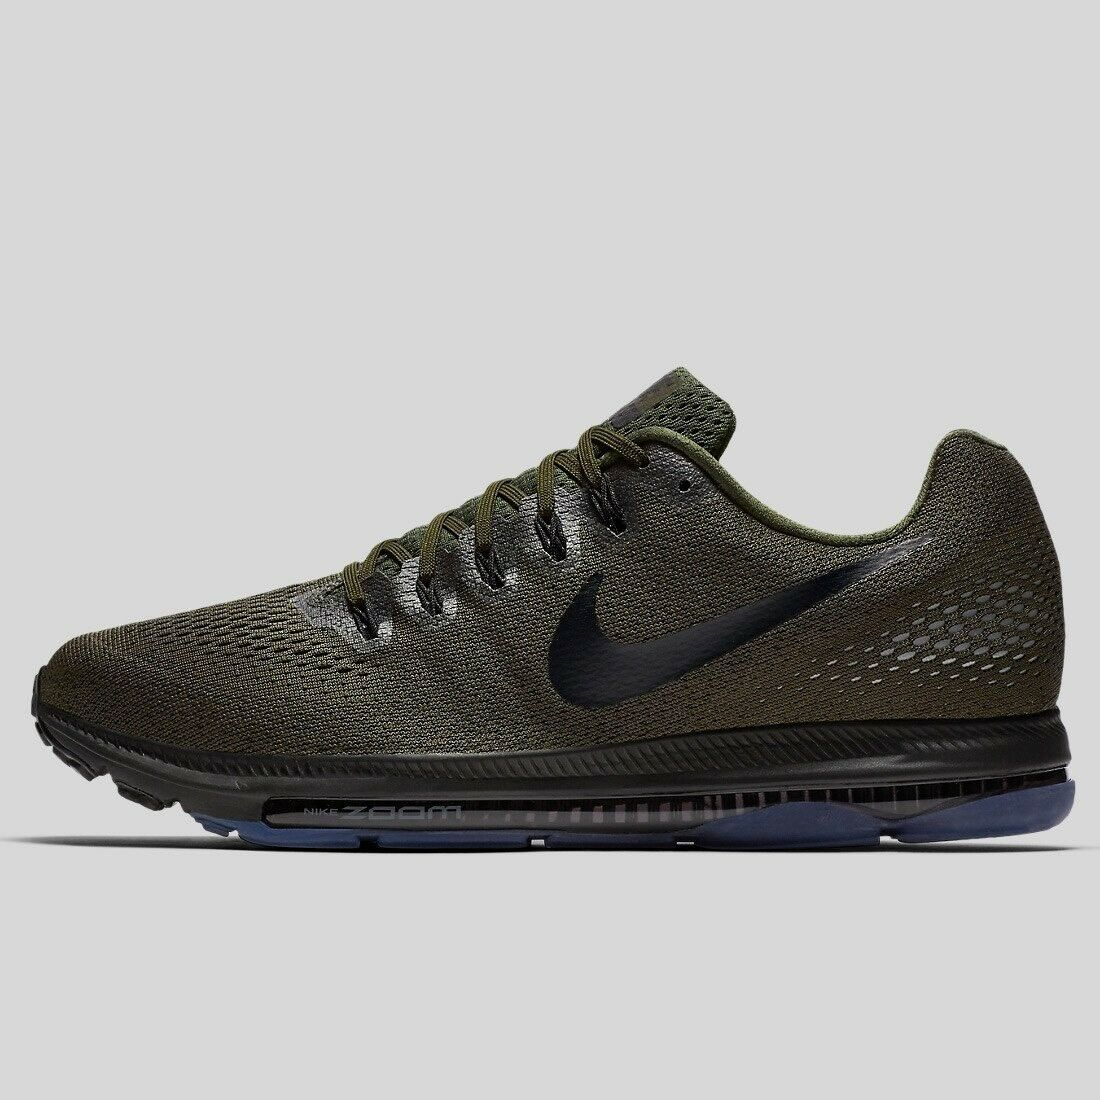 Nike Zoom All Out Trainer9 EU44 Cargo Khaki Pure Platinum Noir RRP£120.00